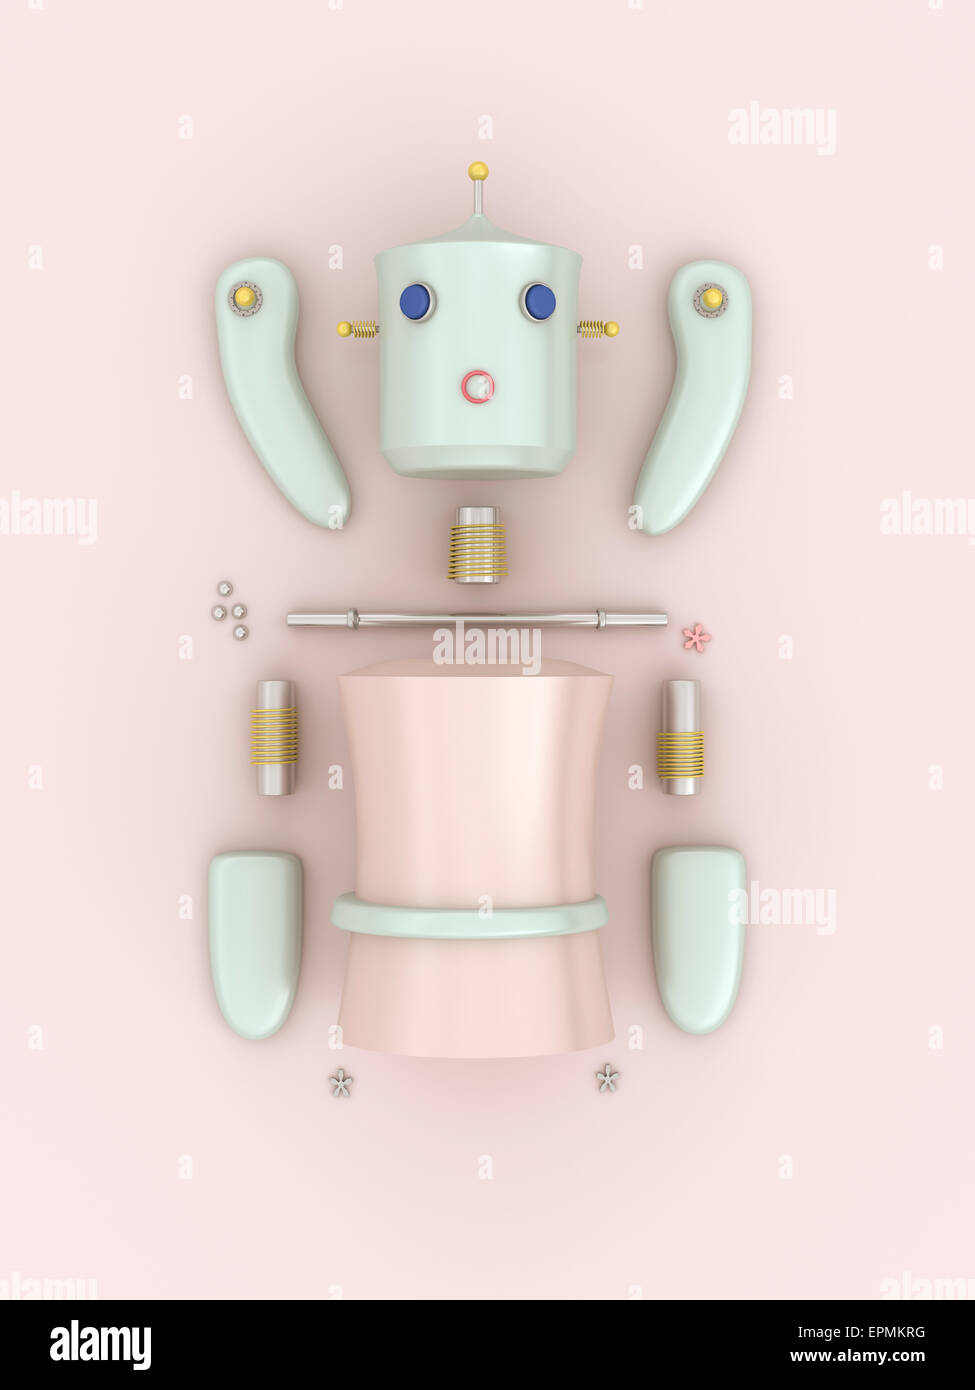 Construction kit of a female robot, 3D rendering - Stock Image